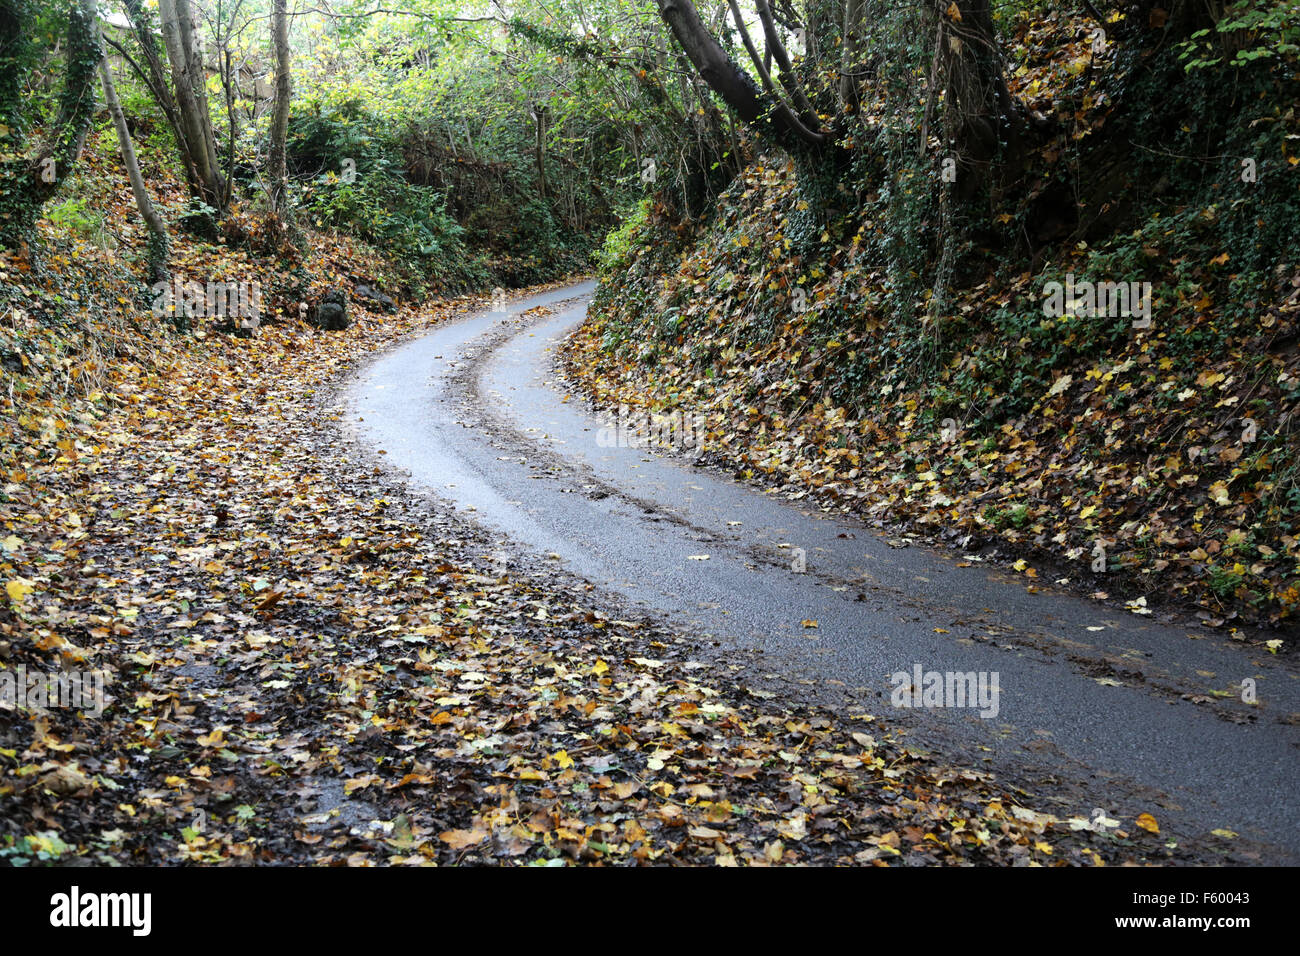 A wet road covered in wet leaves making for a very slippery surface - Stock Image